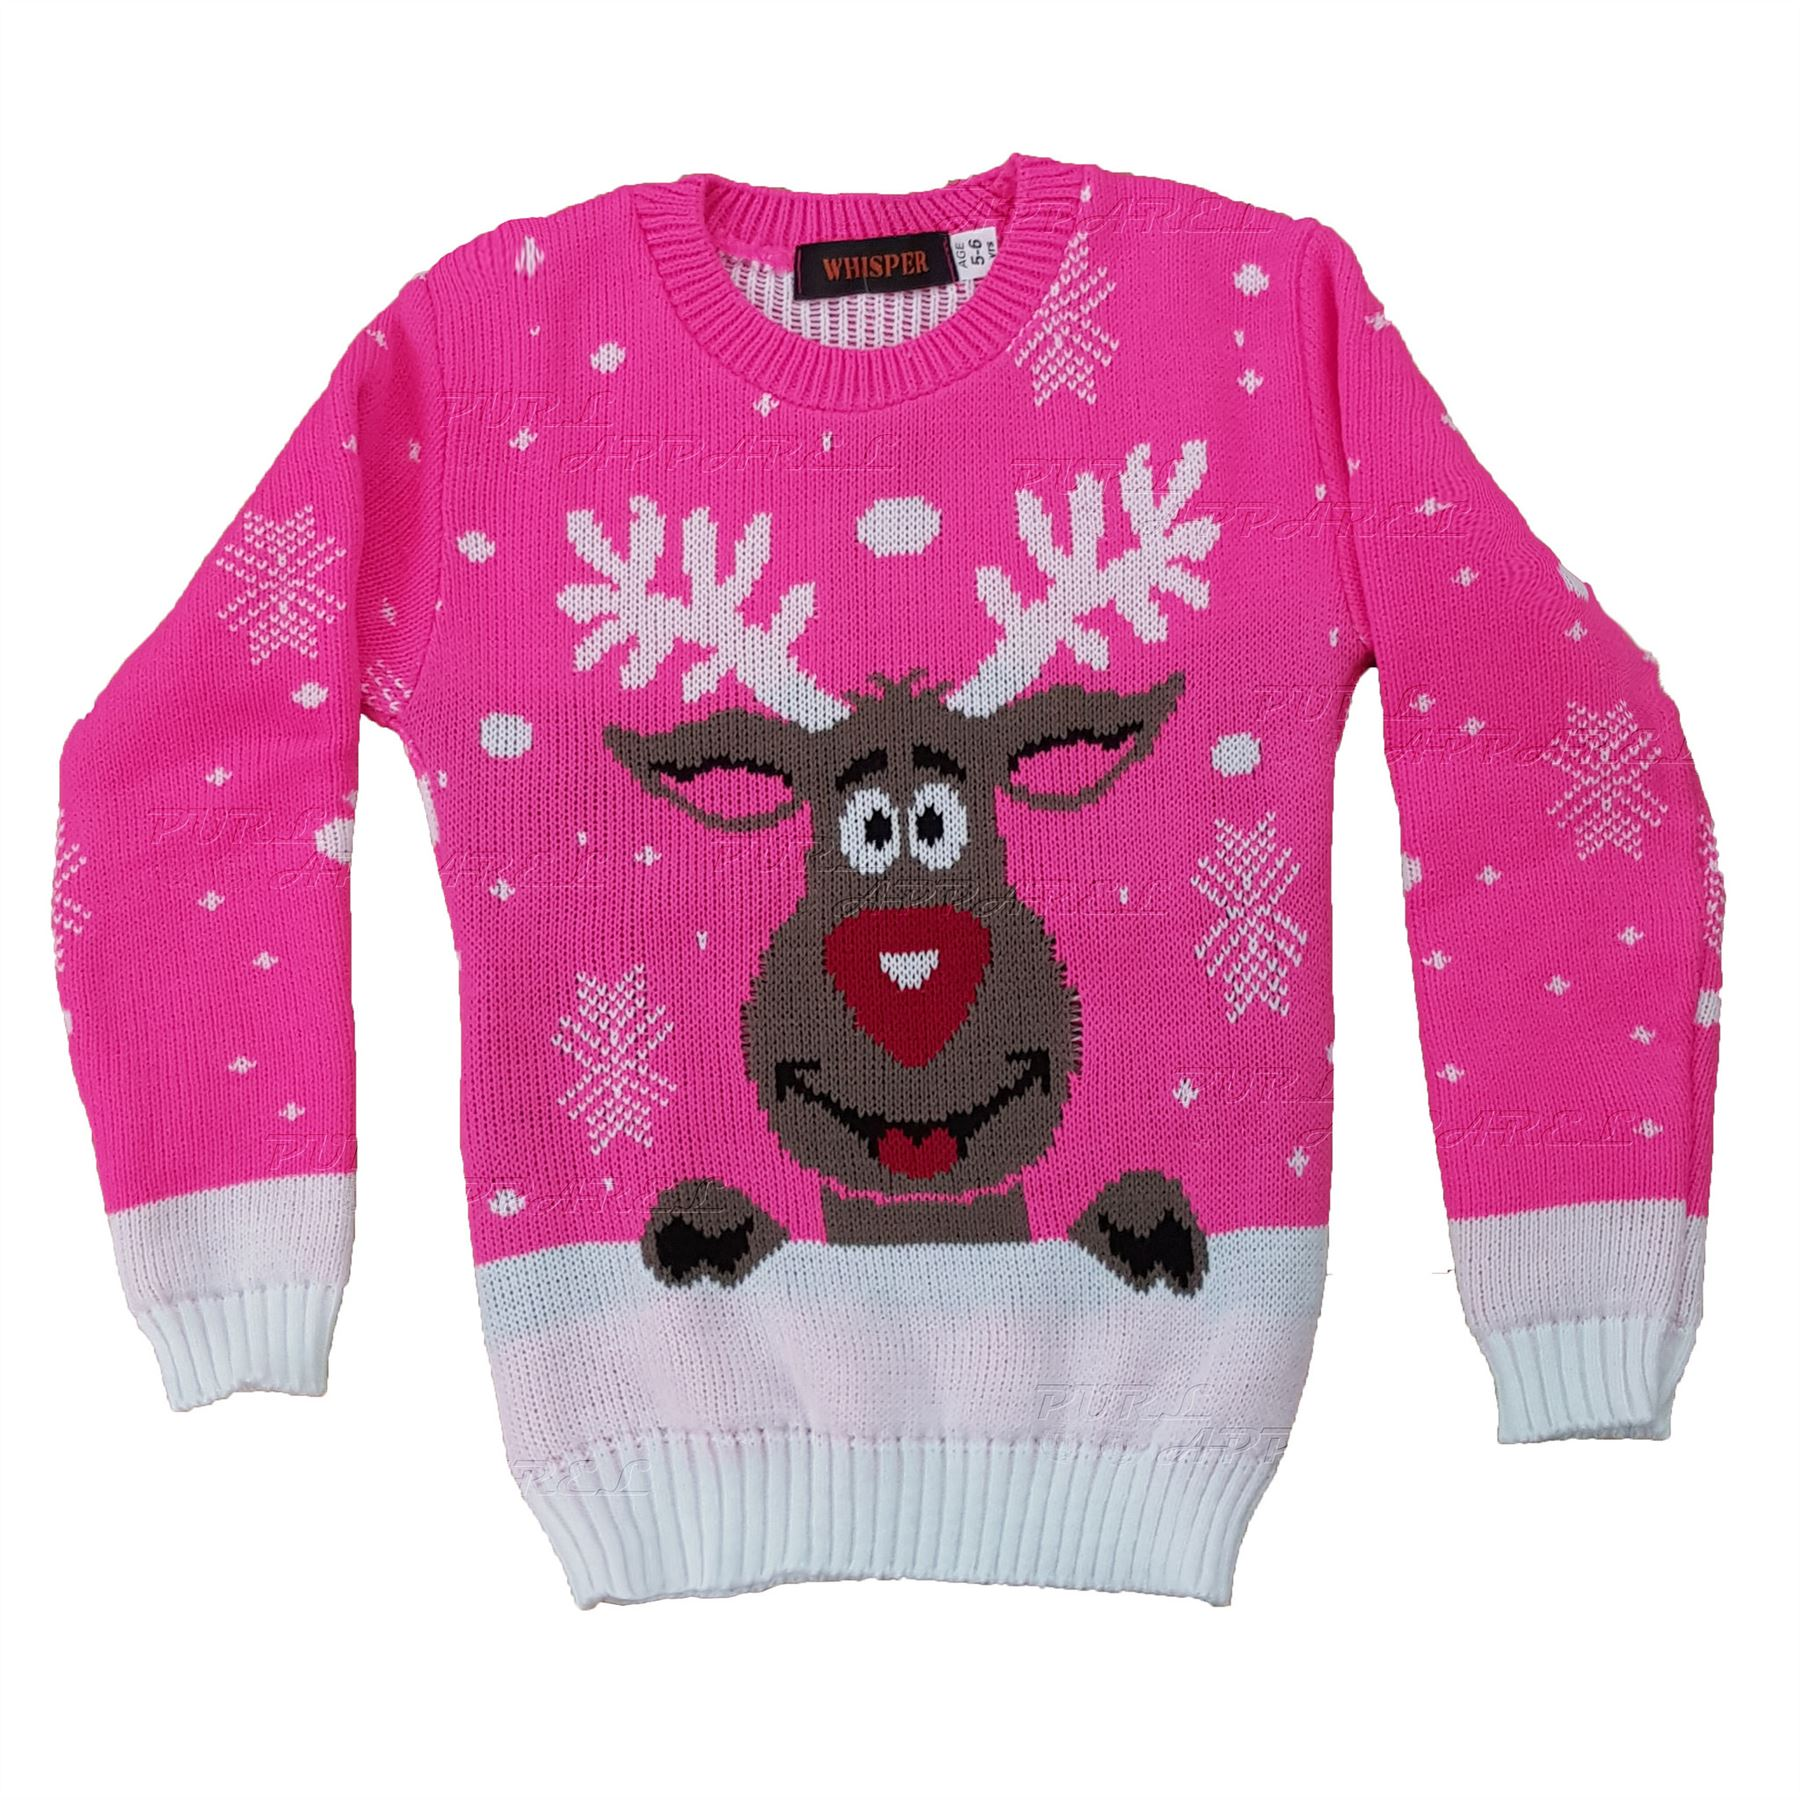 Christmas Jumpers $ Add to Wishlist TV and Movie Christmas Sweaters/Jumpers. Everything we sell is % officially licensed, so you can be confident anything you buy will be of the highest quality and give you that warm, fuzzy feeling that only comes from supporting the creators. Merchoid Mystery Knitted Christmas Sweater! Christmas.